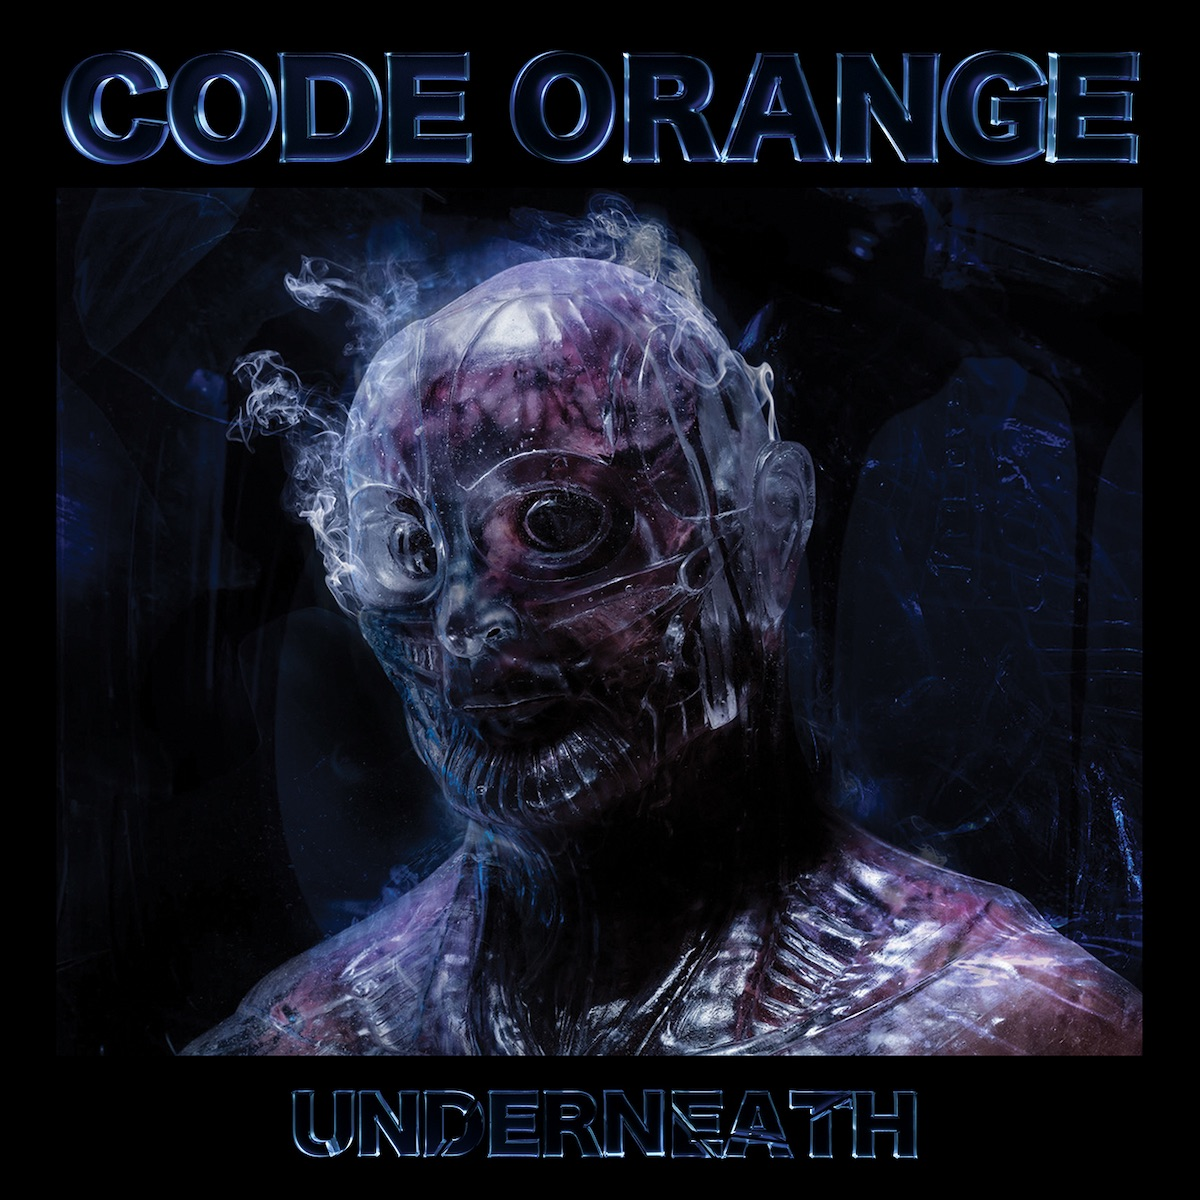 Code Orange - Underneath 2020 Anticipated